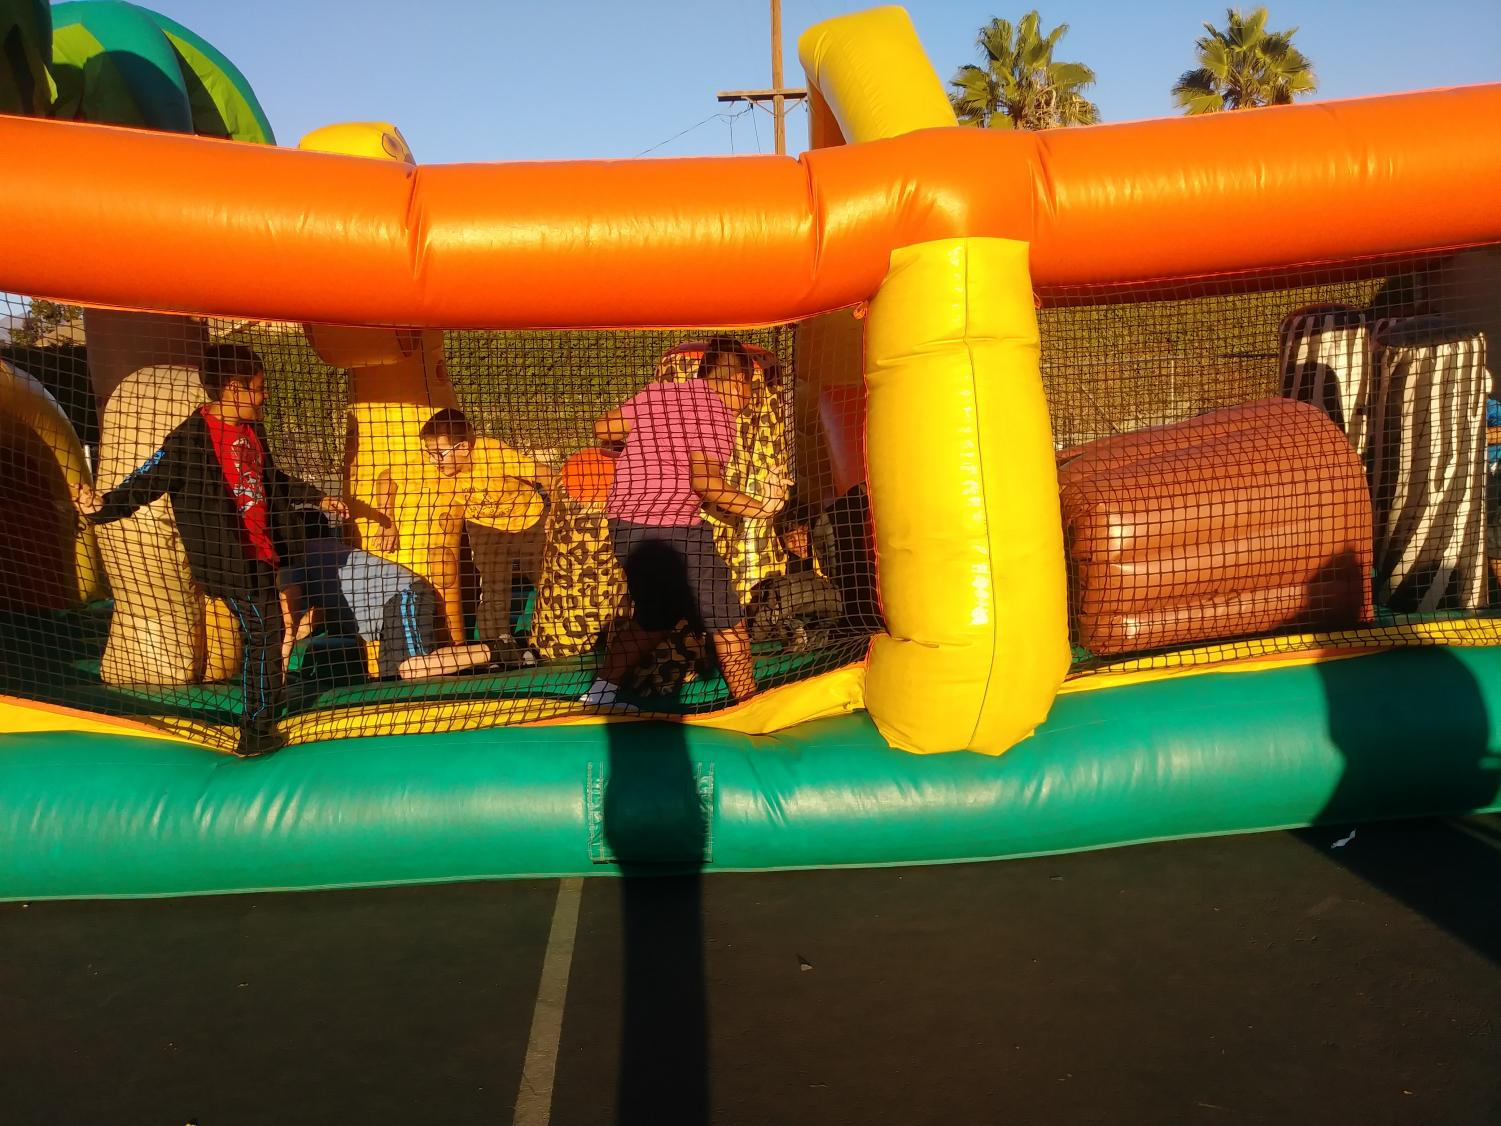 John+Muir+students+have+fun+in+the+bouncy+house+during+the+Monster+Mash.